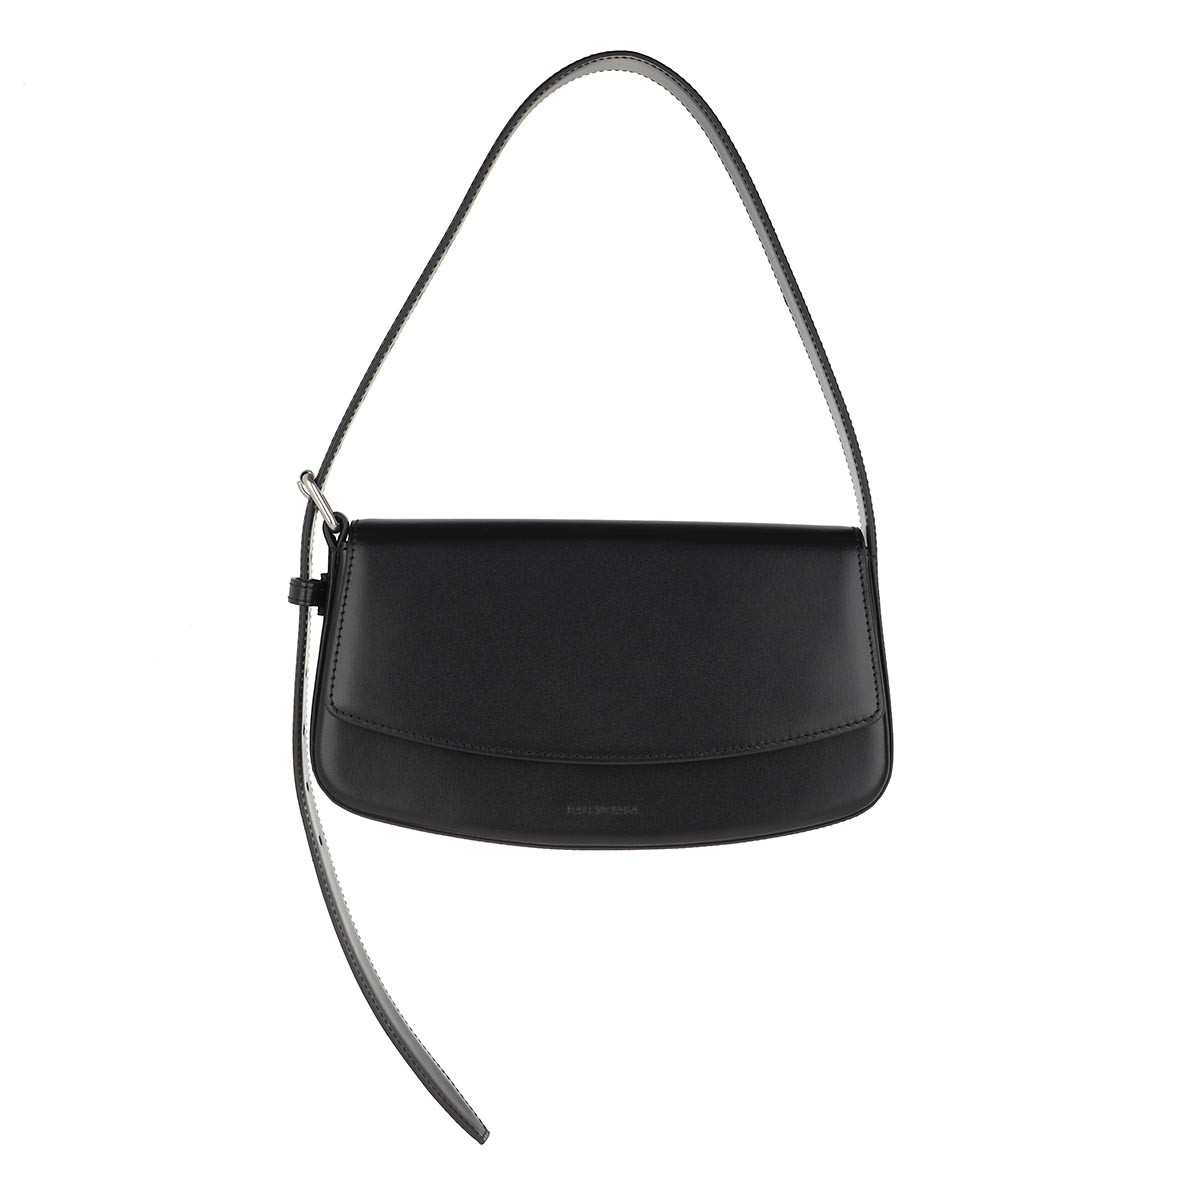 Balenciaga Satchel Bag - Baguette Belt Bag Leather Black - in schwarz - für Damen